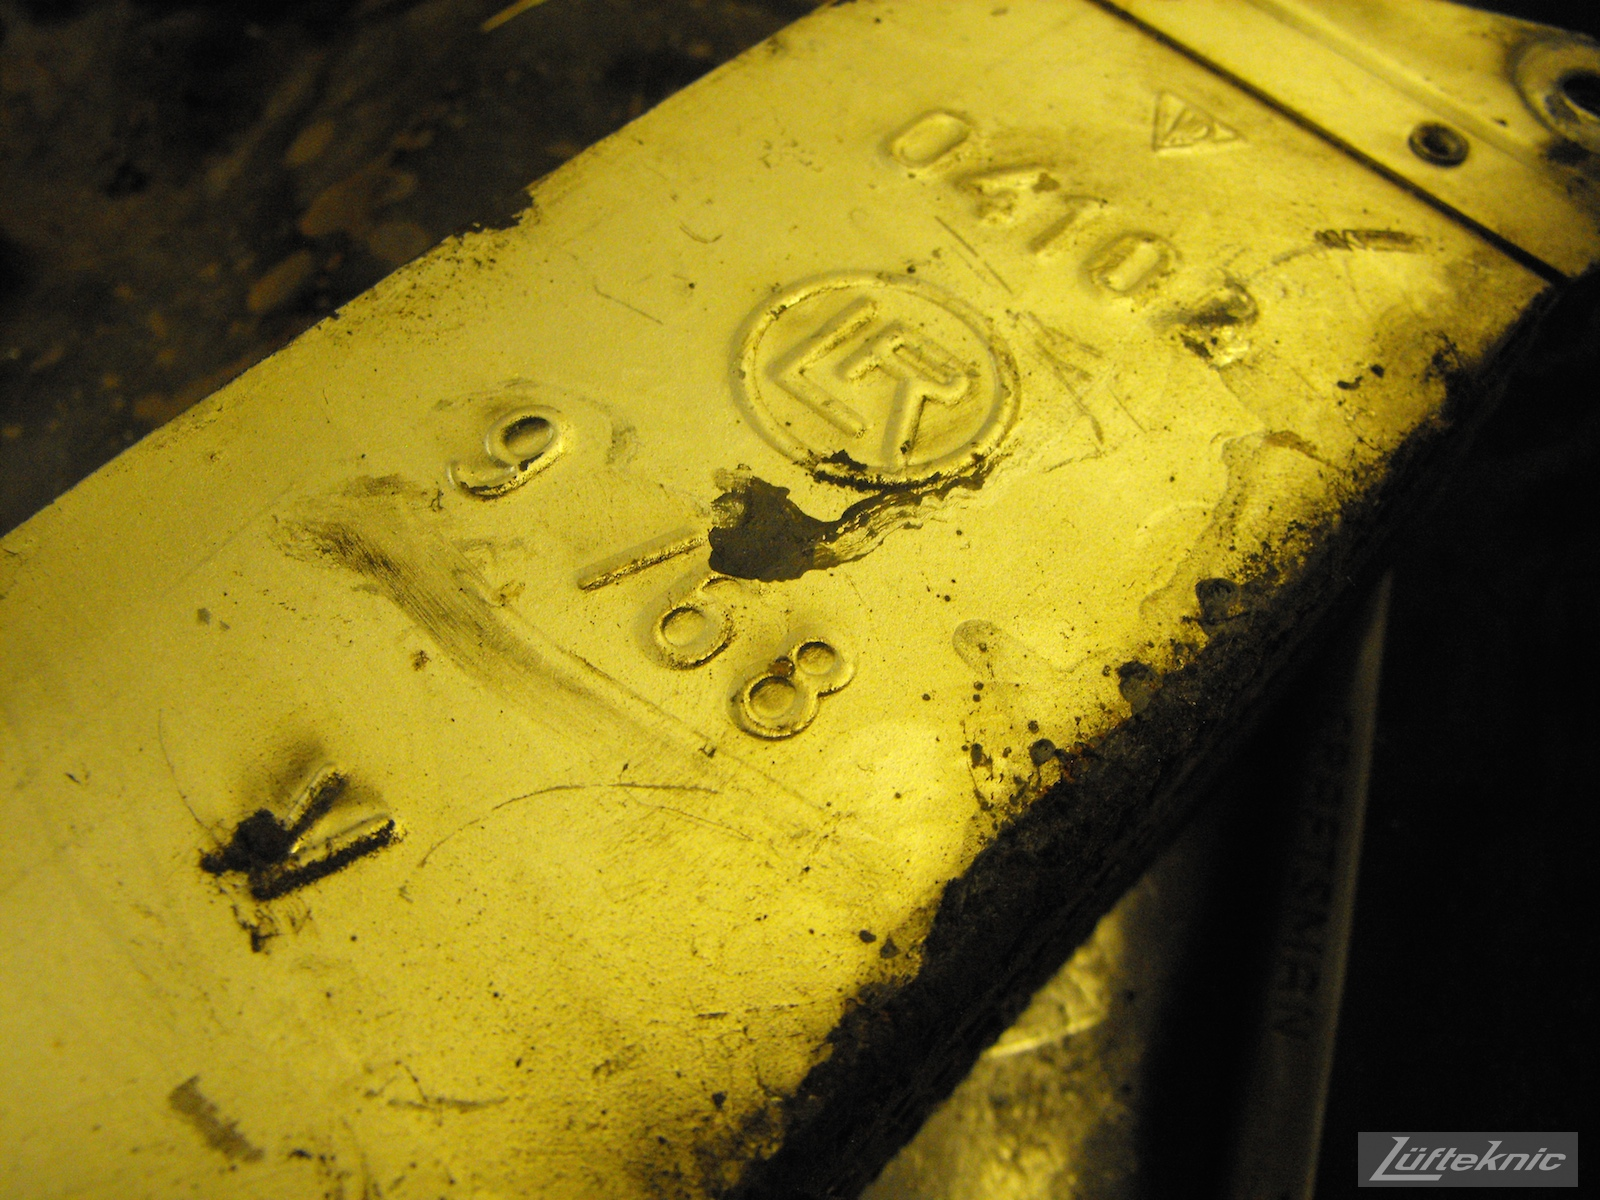 Date stamp on an oil cooler from an Irish Green Porsche 912 undergoing restoration at Lufteknic.